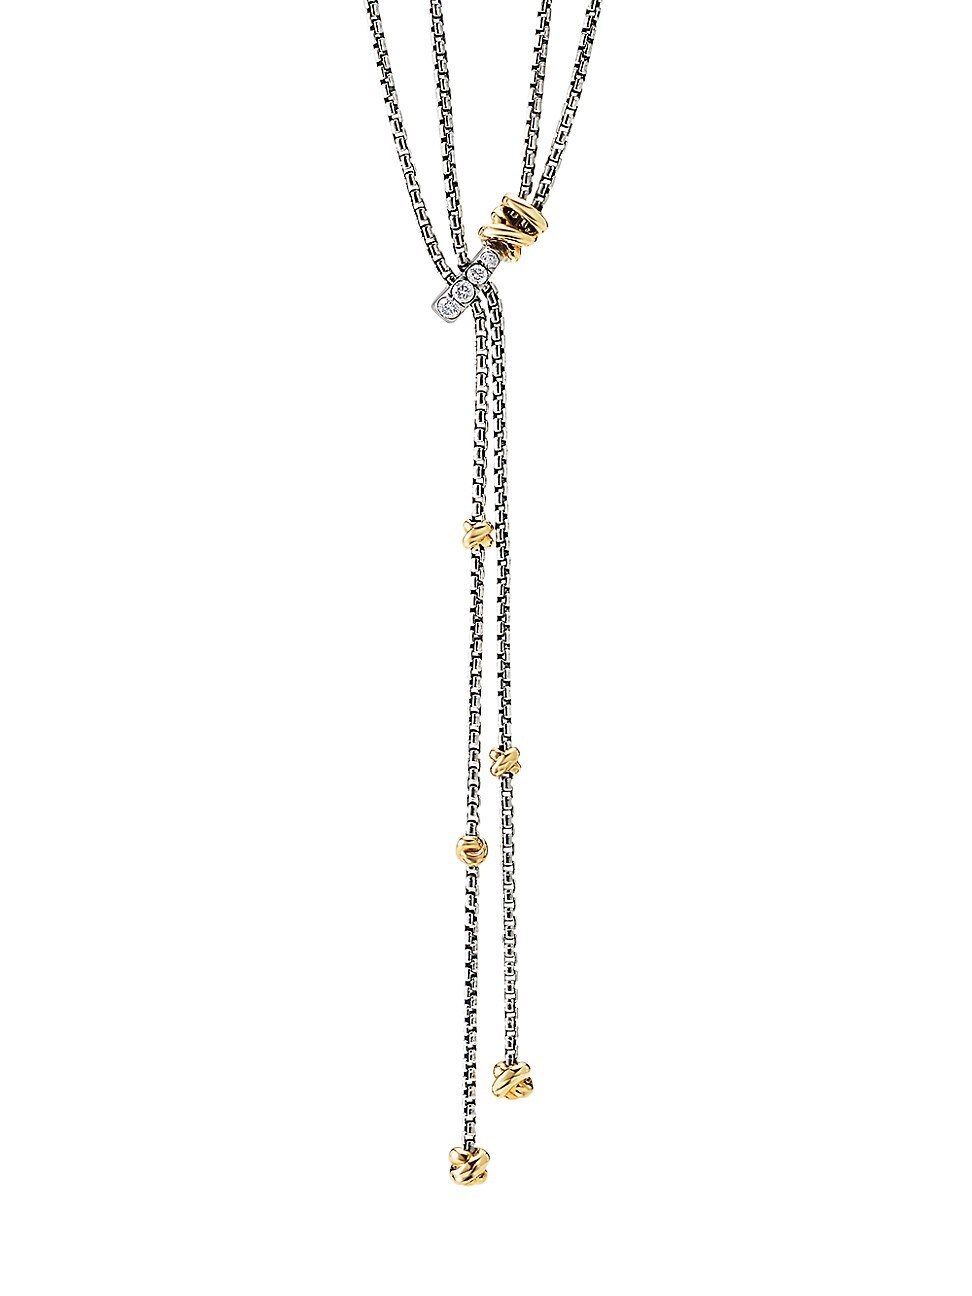 David Yurman WOMEN'S HELENA Y NECKLACE WITH 18K YELLOW GOLD & DIAMONDS